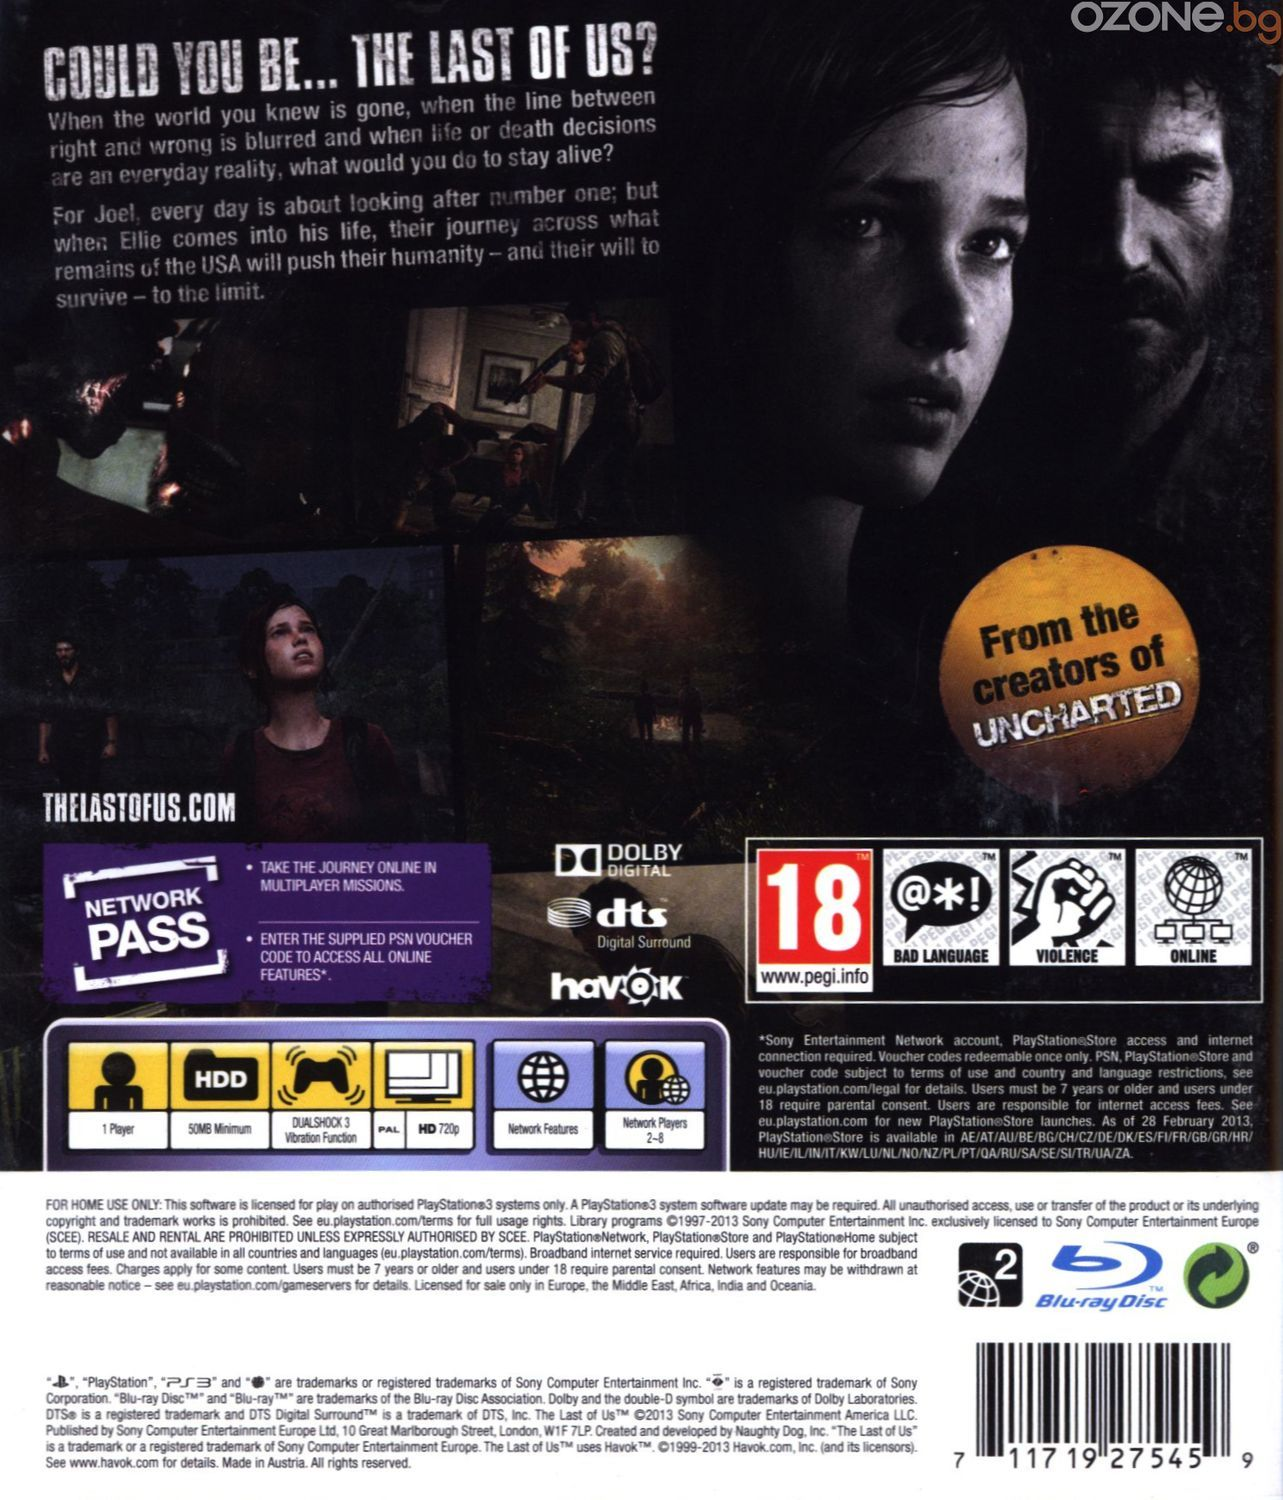 The Last of Us (PS3) - 7